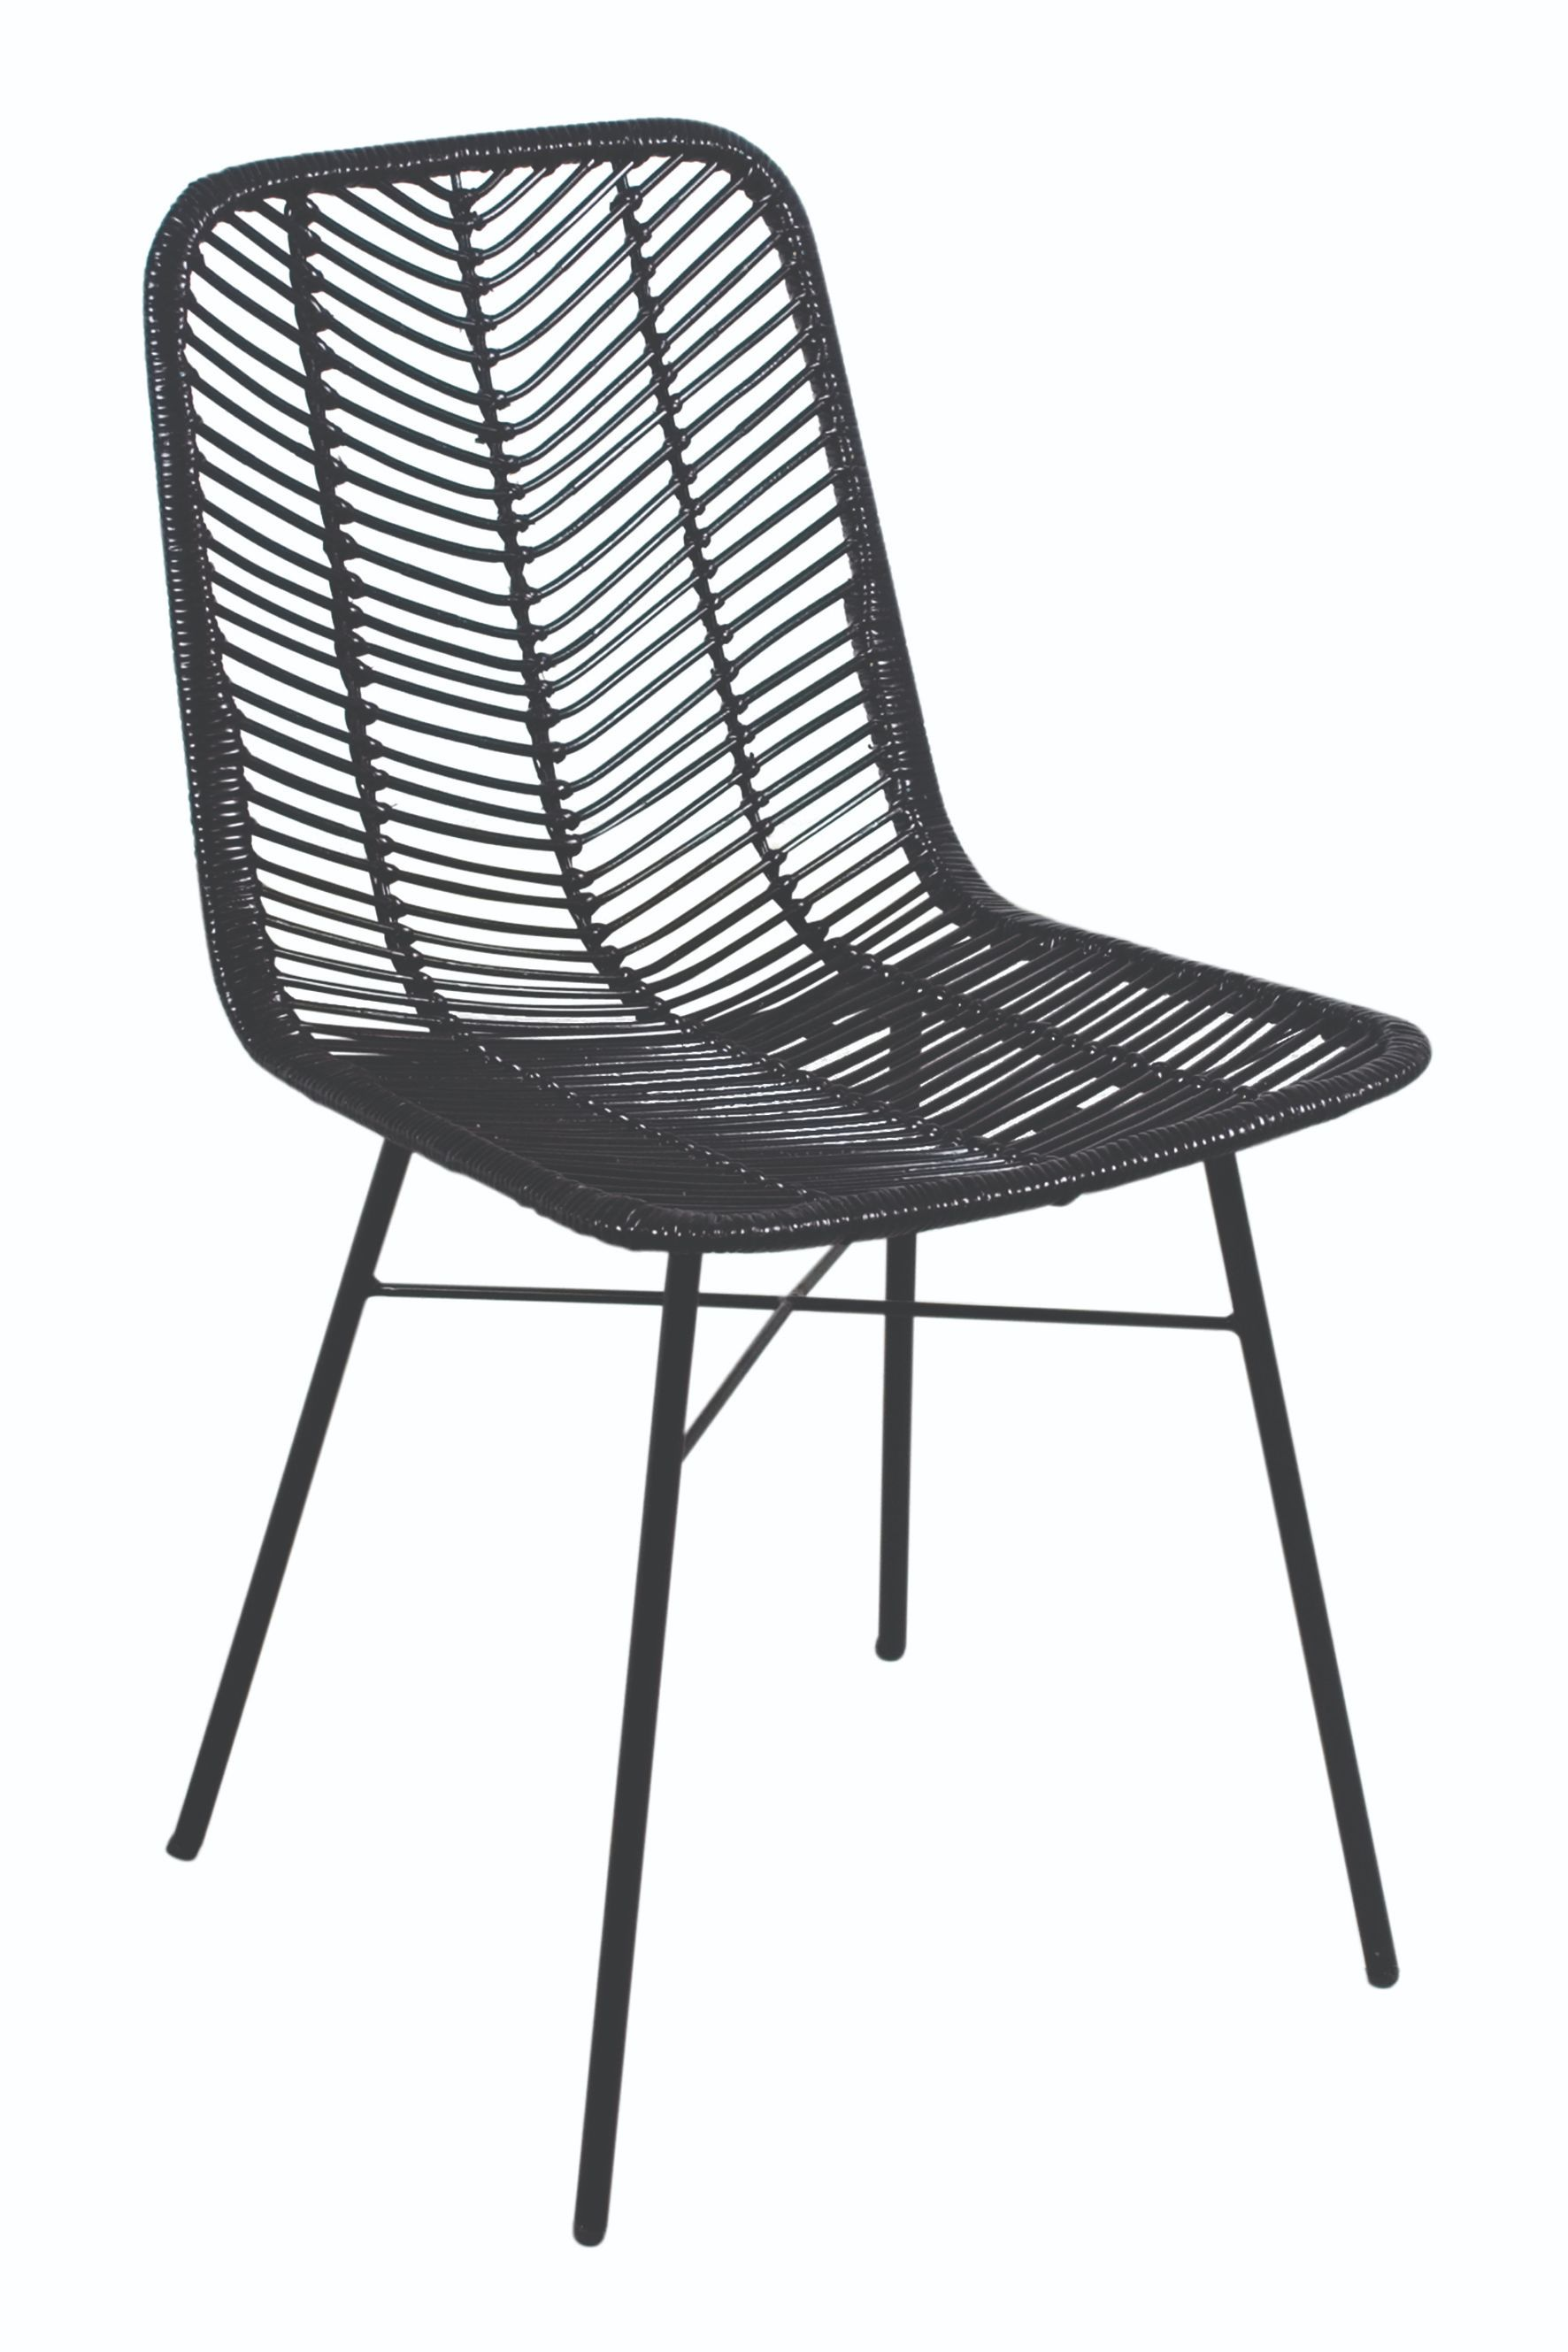 MAYA CHAIR Black Rattan